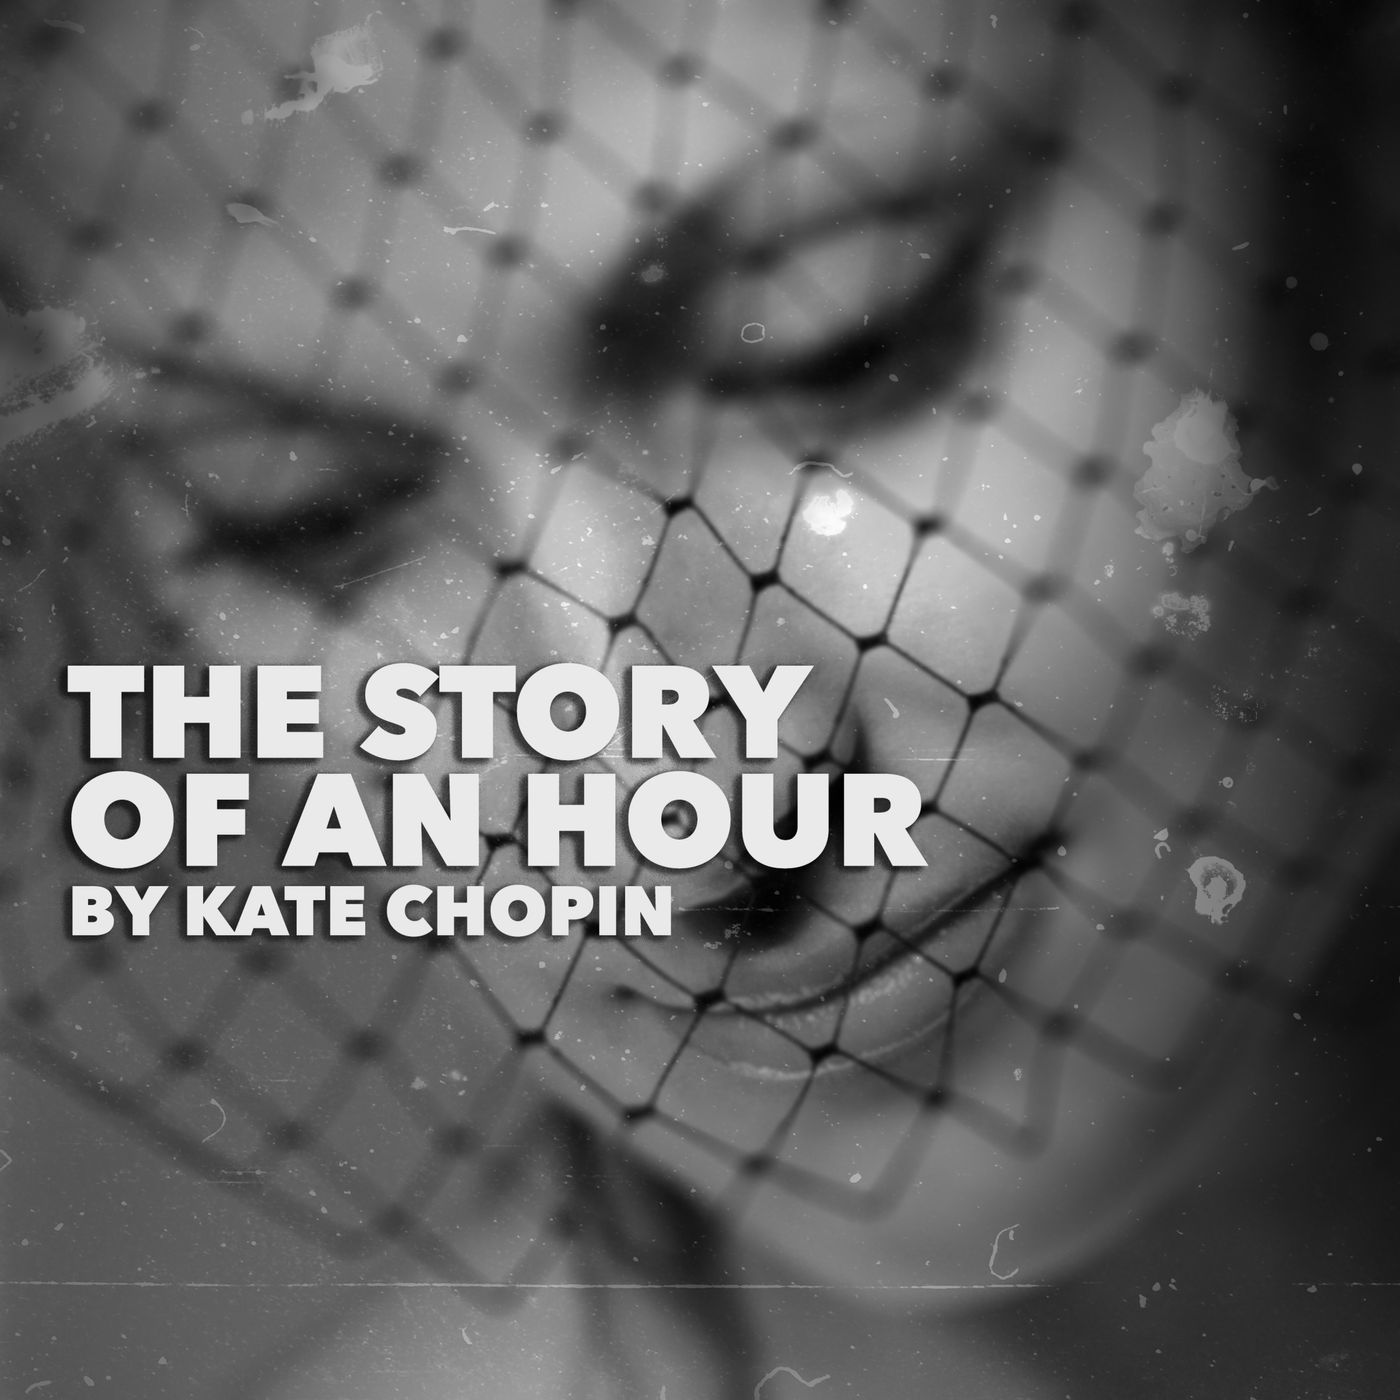 The Story of an Hour by Kate Chopin